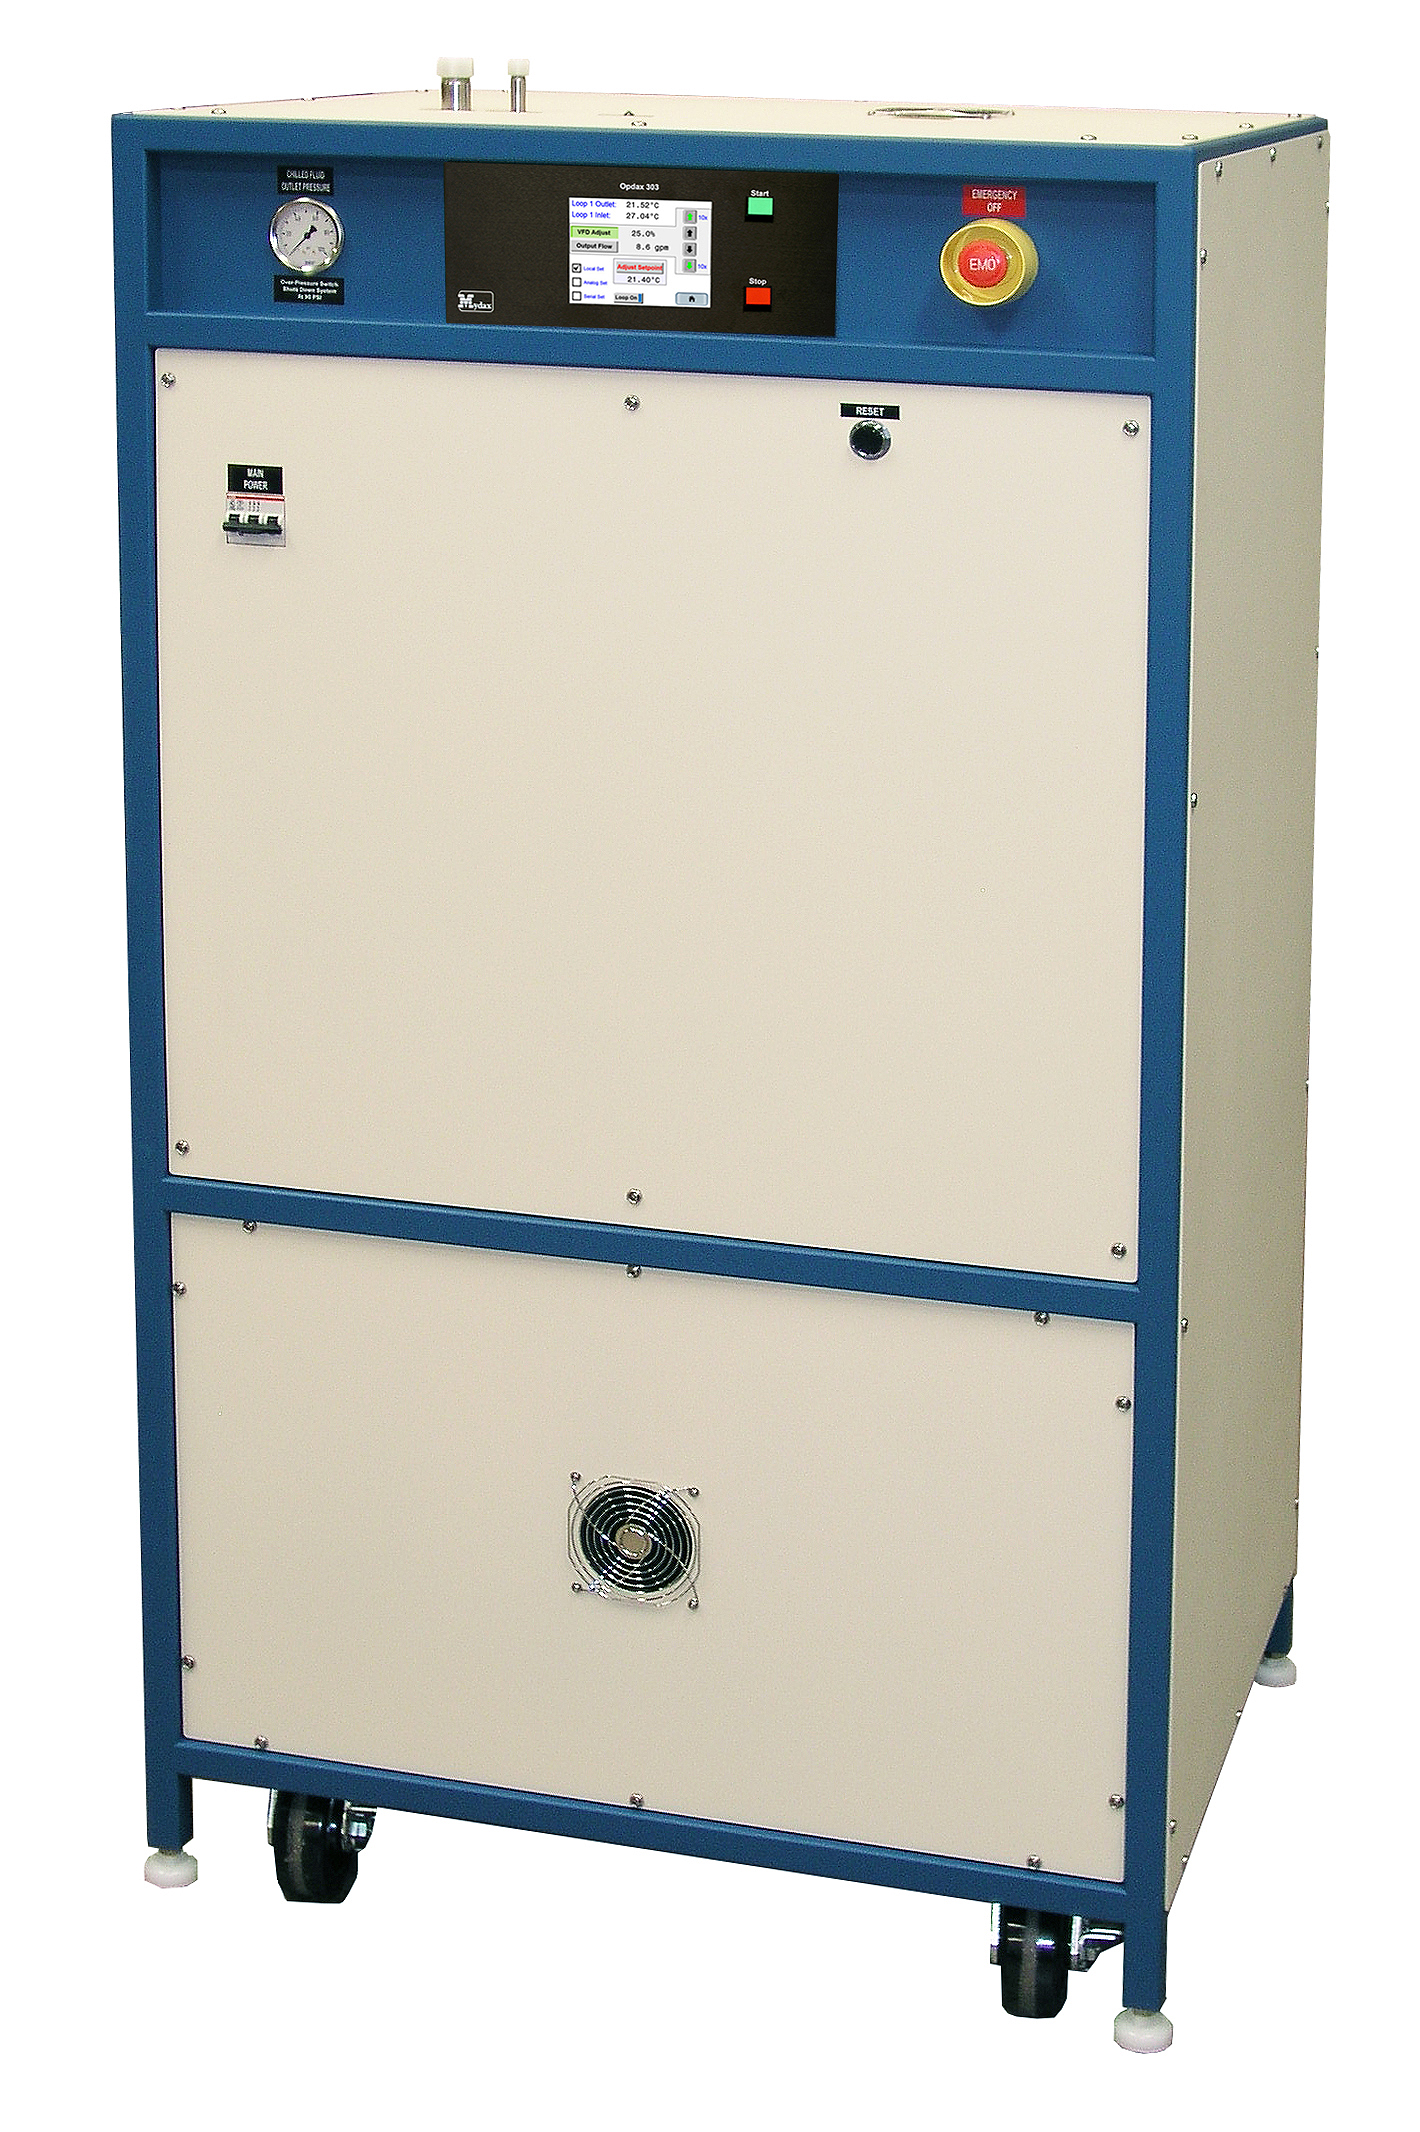 Mydax 1M16W Water Cooled Process Cooling Chiller